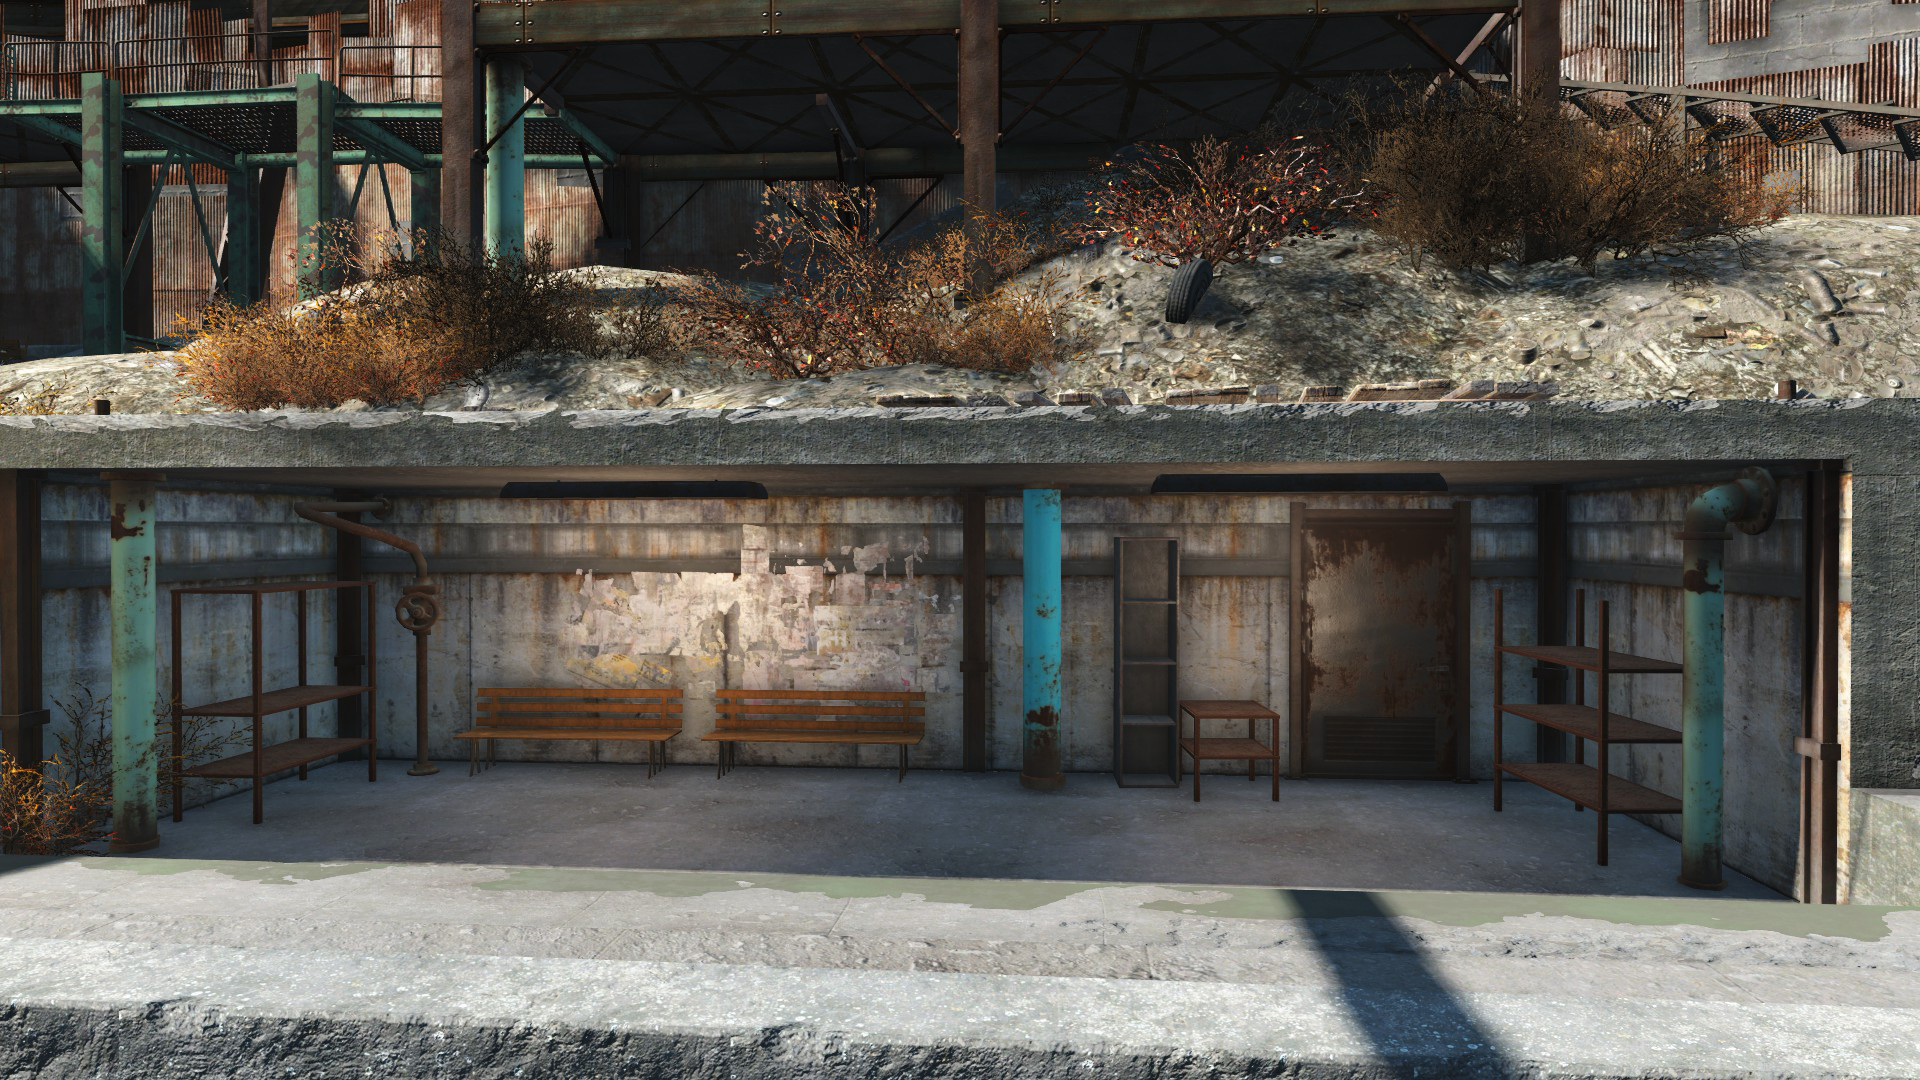 SecurityOffice-Exterior-Fallout4.jpg